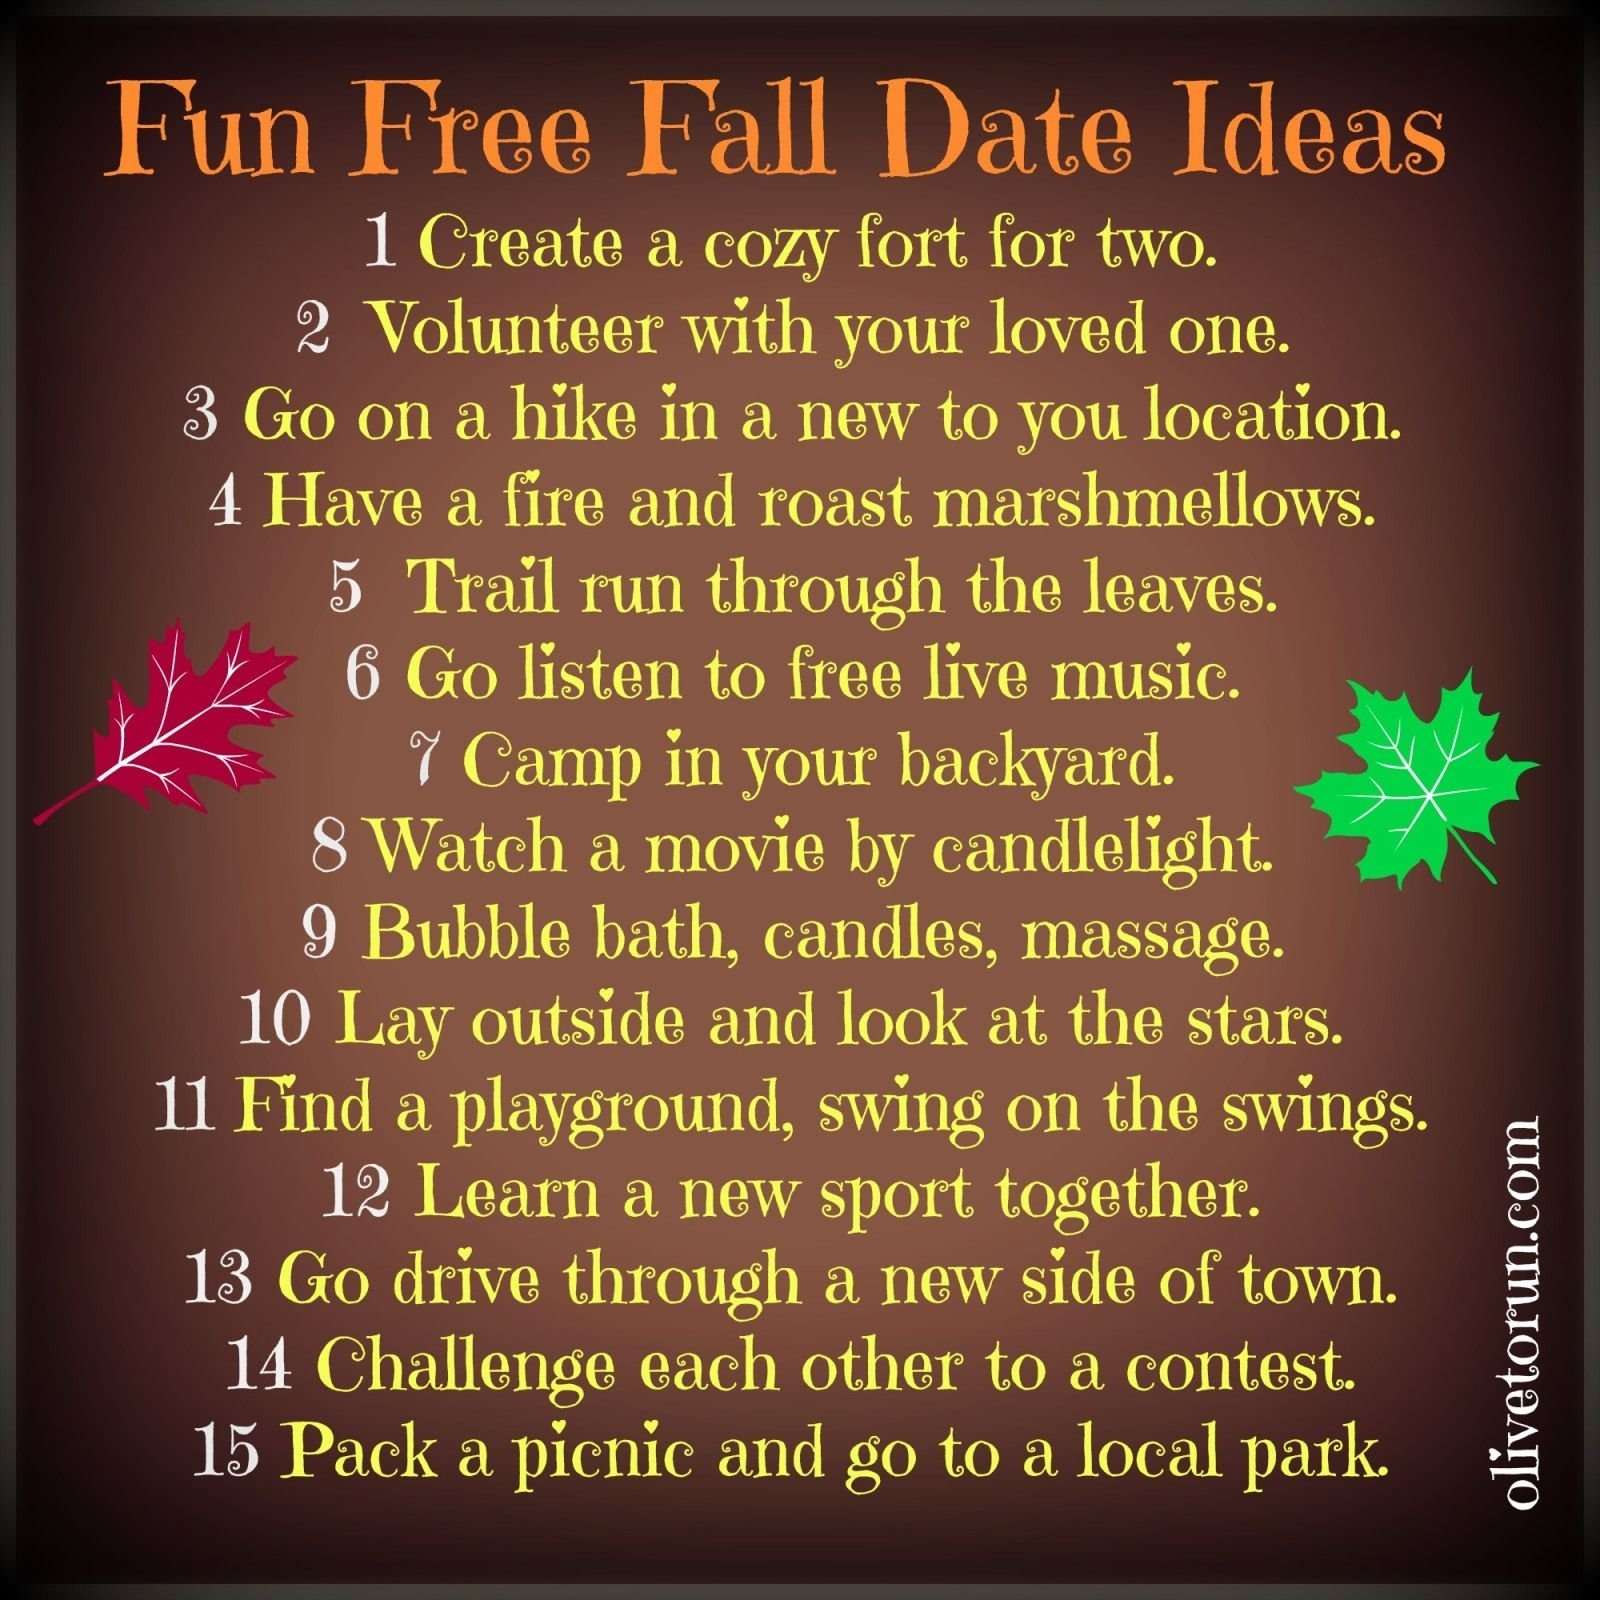 10 Spectacular Dating Ideas For Married Couples dating ideas for married couples 1 go geocaching 1 2020